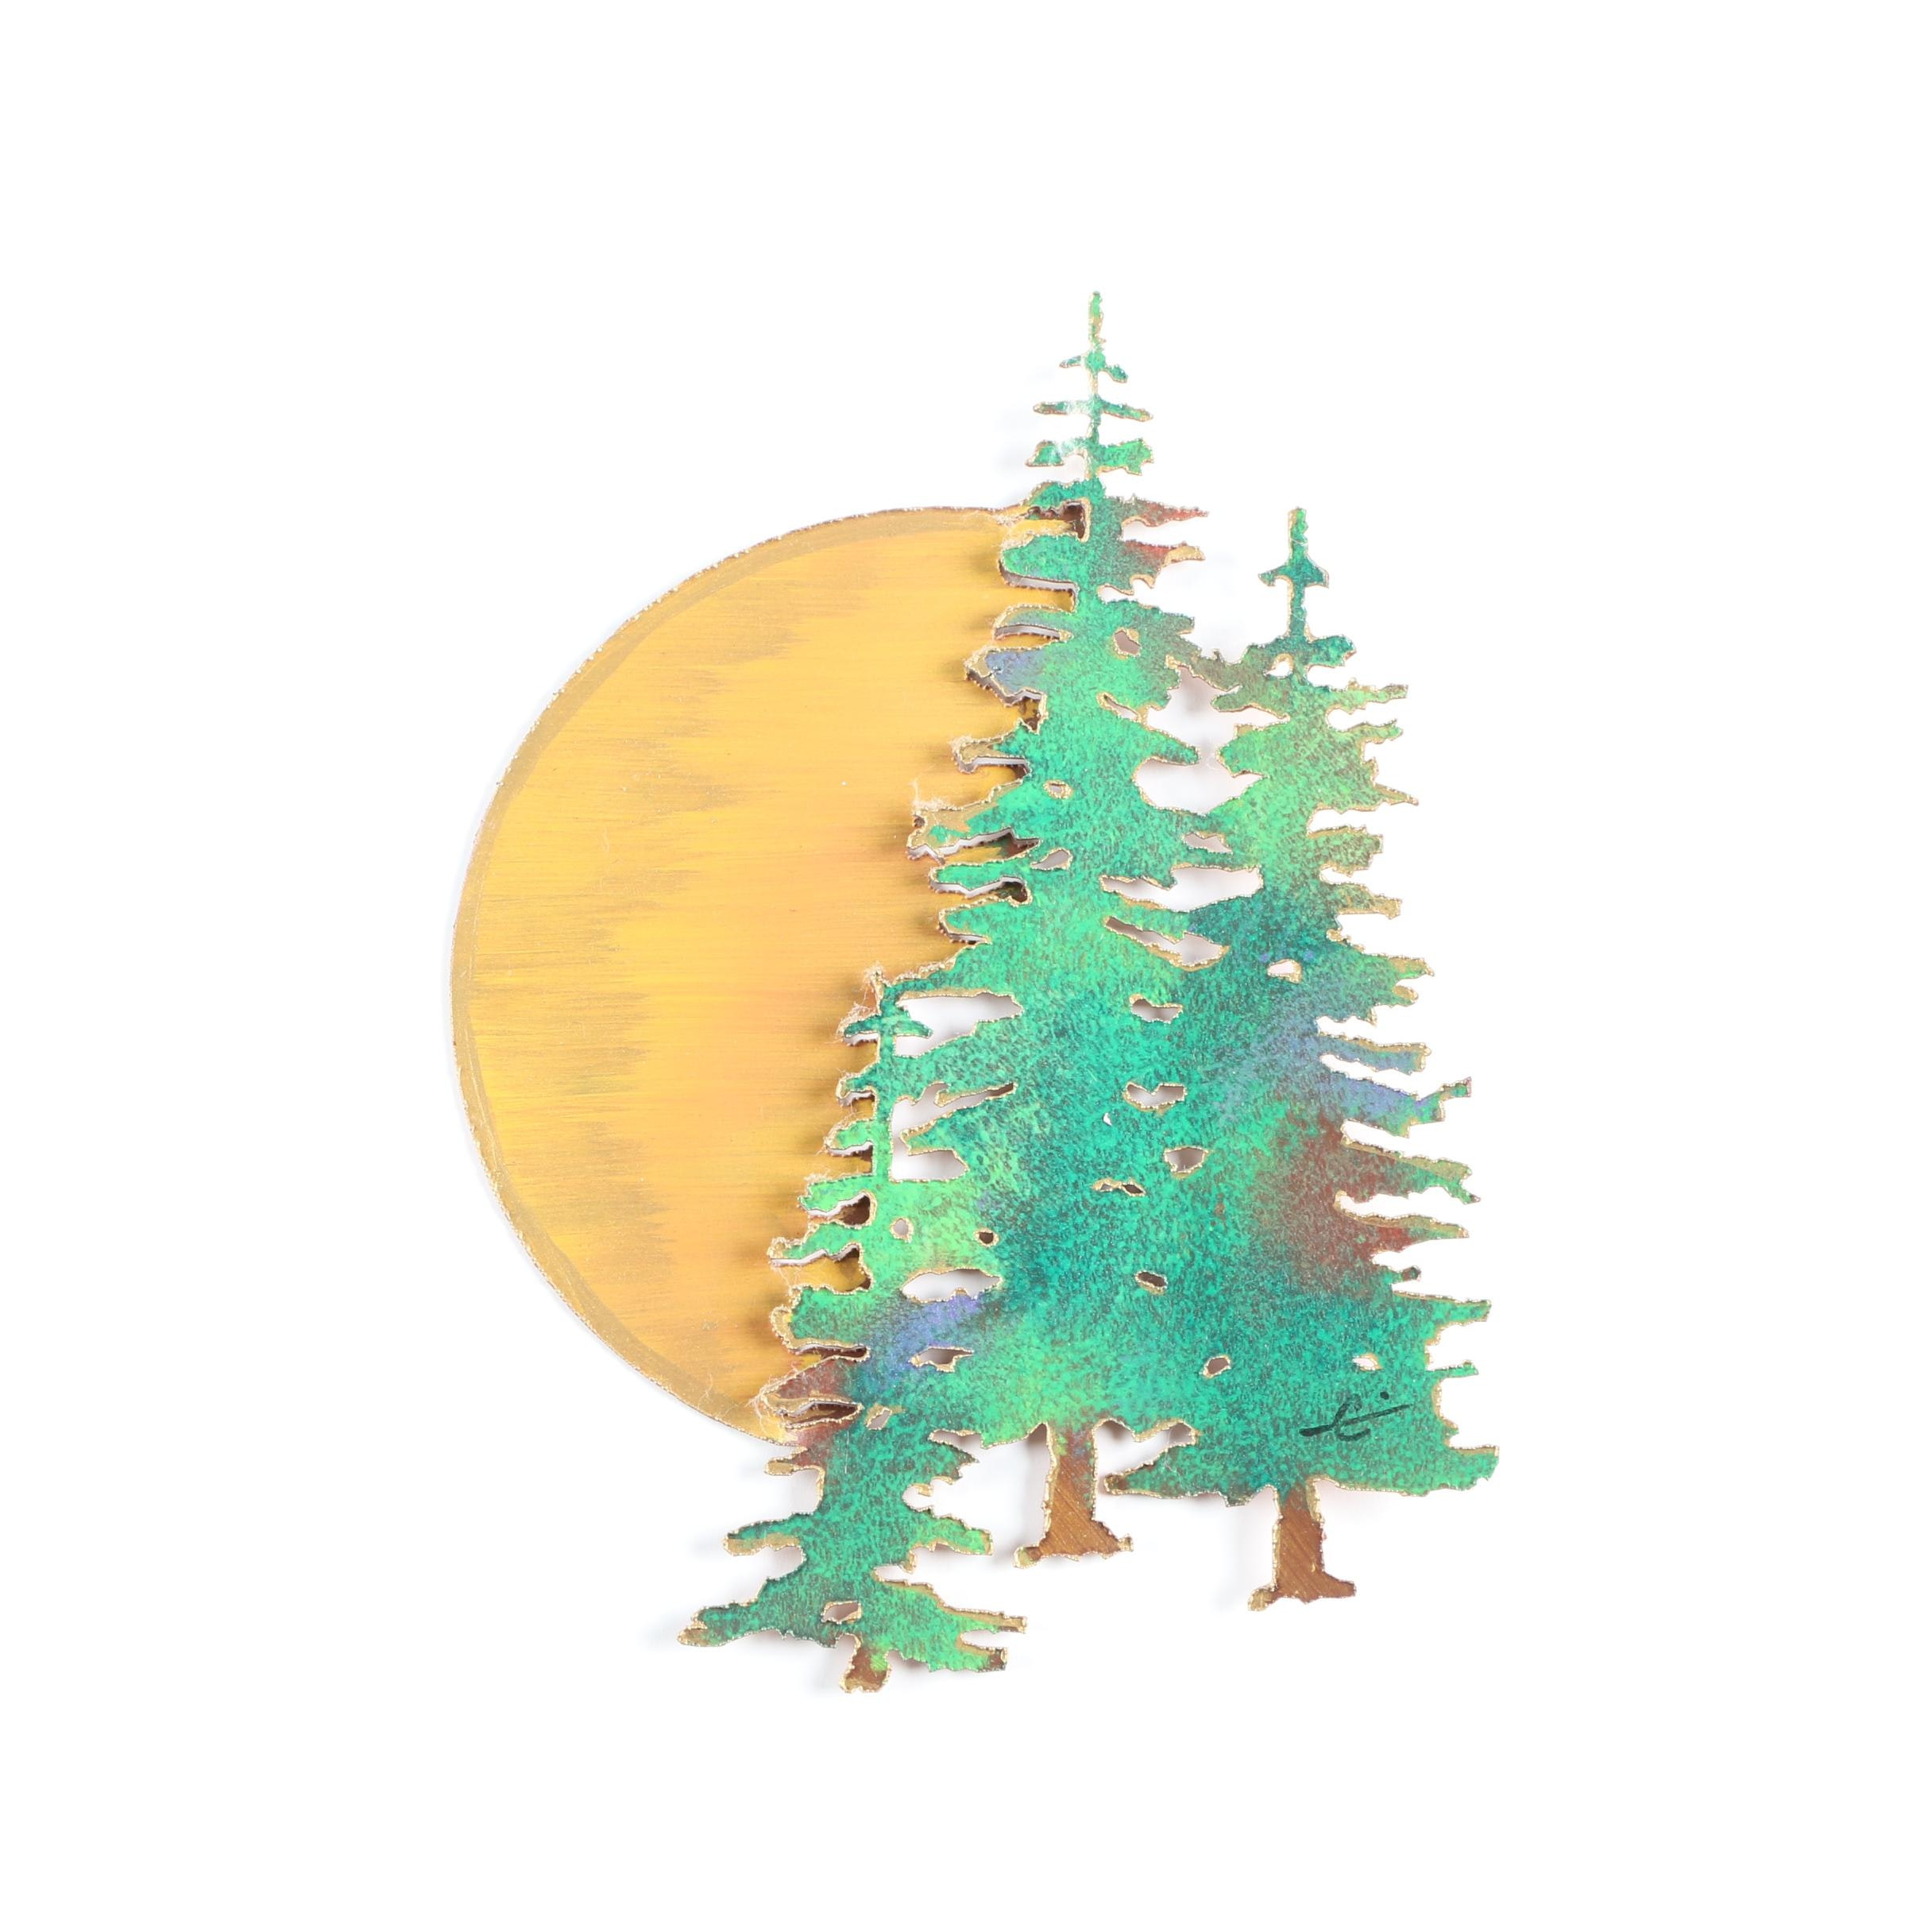 Painted Metal Wall Sculpture of Evergreens in the Moonlight